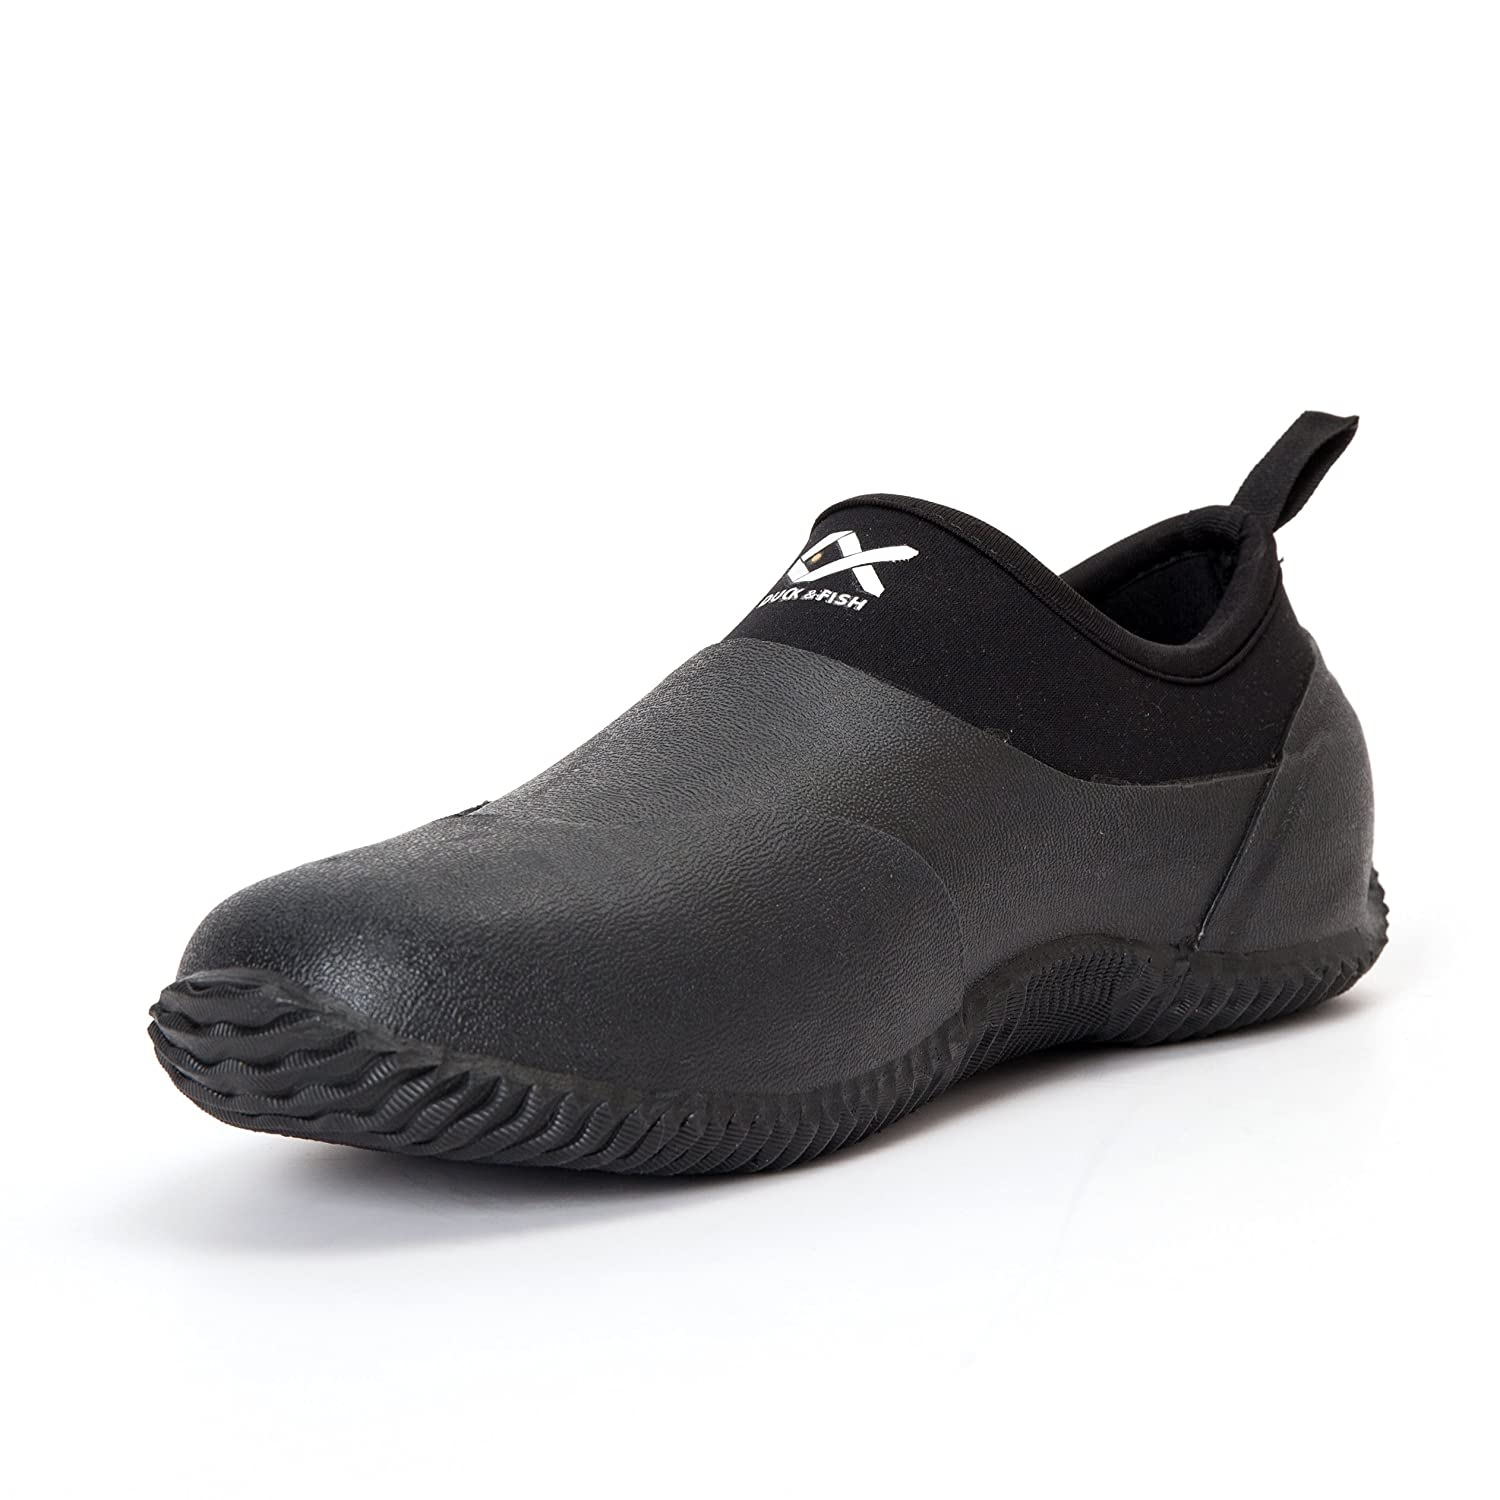 Duck and Fish Neoprene MOC Hunting Garden Shoe